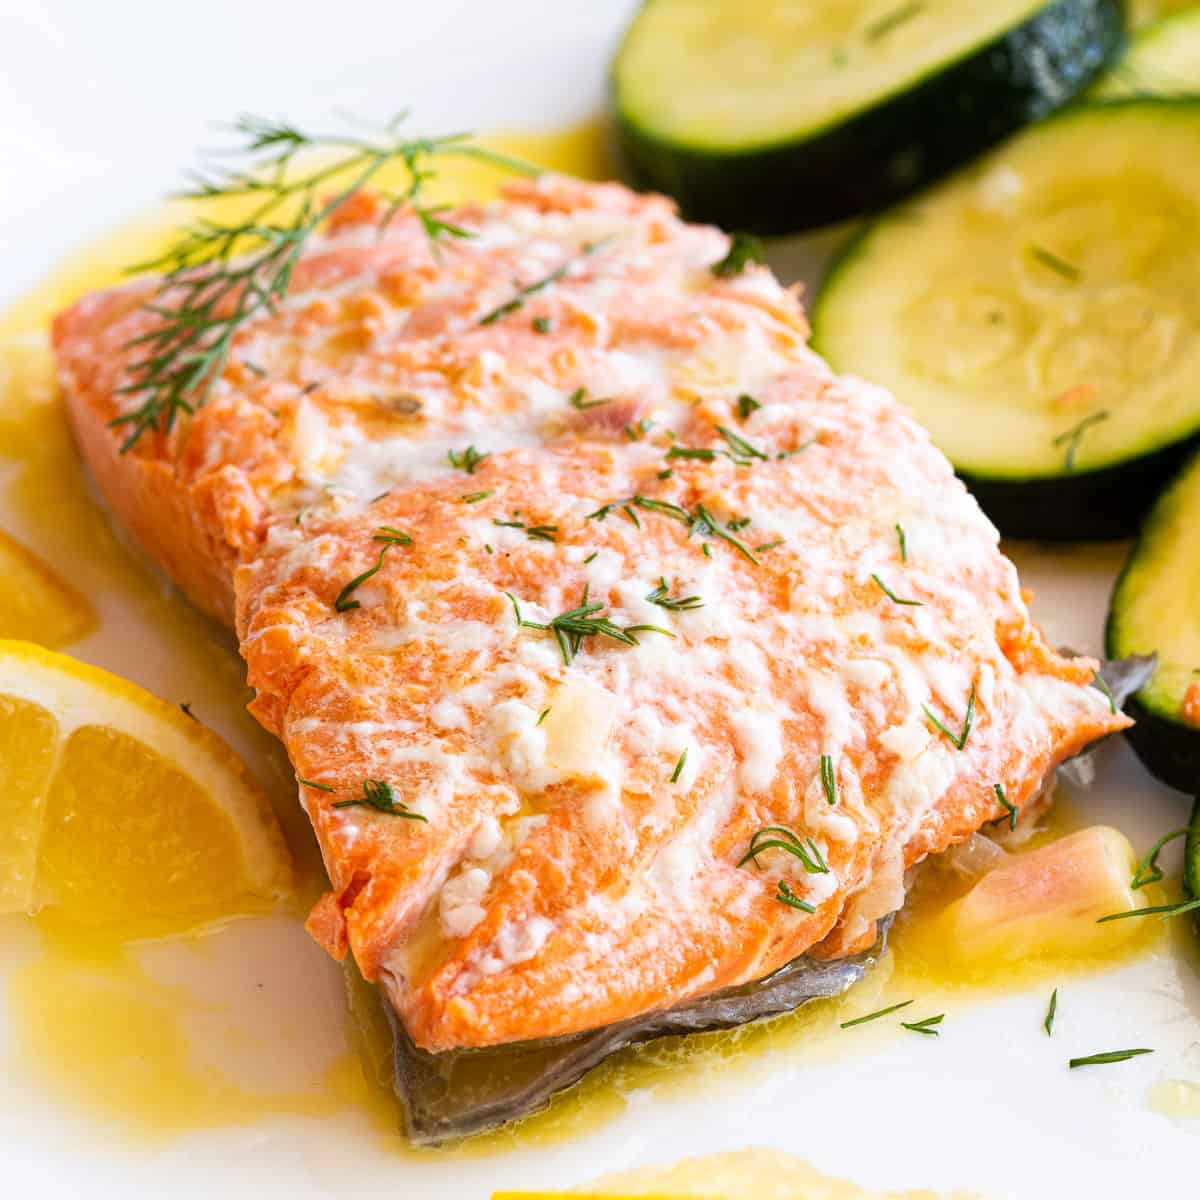 A plate of poached salmon with zucchini and a lemon wedge with a sprig of dill